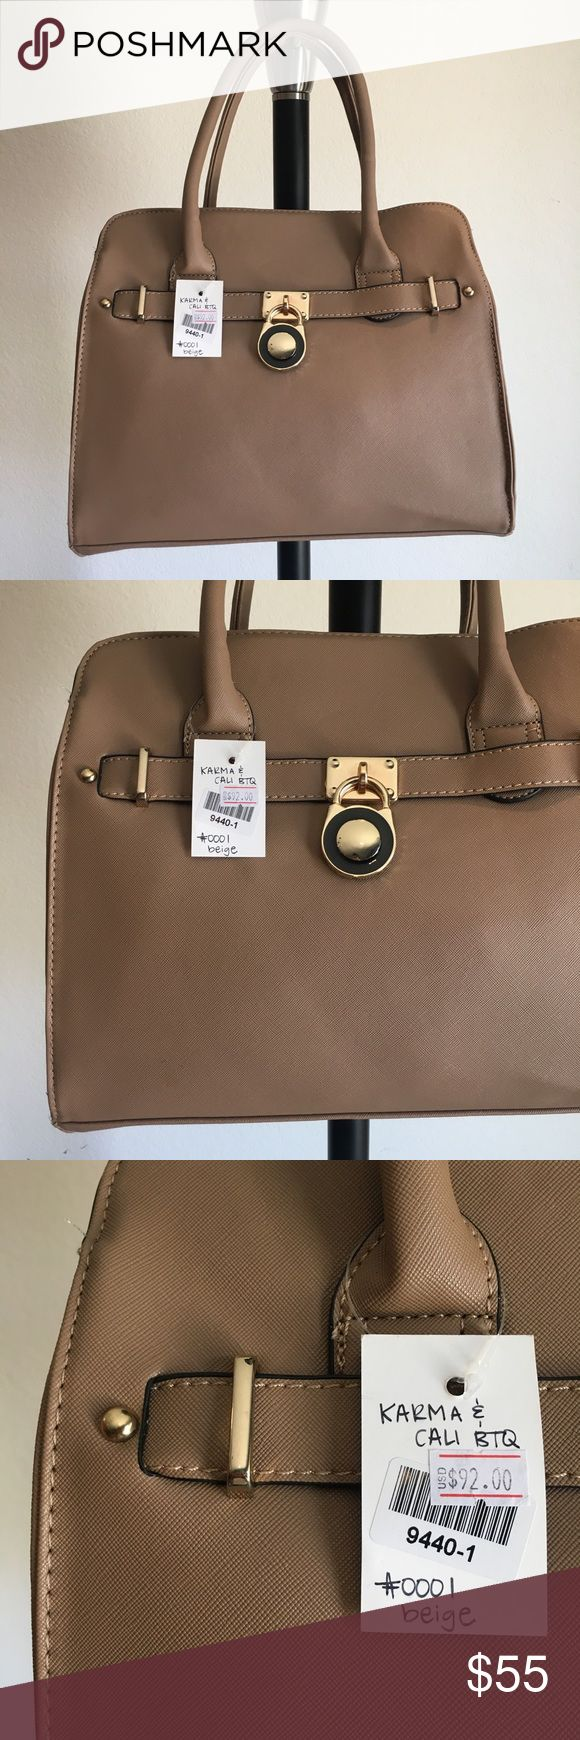 "👜 Tan Trendy handbag / purse 🔥Brand New Boutique Item handbag (brand new with tags) ONLY 1 of this color and style available! By Karma & Cali Boutique 👜 -Color: tan colored handbag with gold hardware, hanging lock, and optional cross body strap -Dimensions: 14"" length, 11.5"" height, 5"" width, 6.5"" strap drop -Details: 2 interior pouches, 2 zippered pockets  -Materials: soft animal friendly VEGAN LEATHER, easy to clean, creases iron out with use, *cannot be restocked Karma & Cali Boutique…"